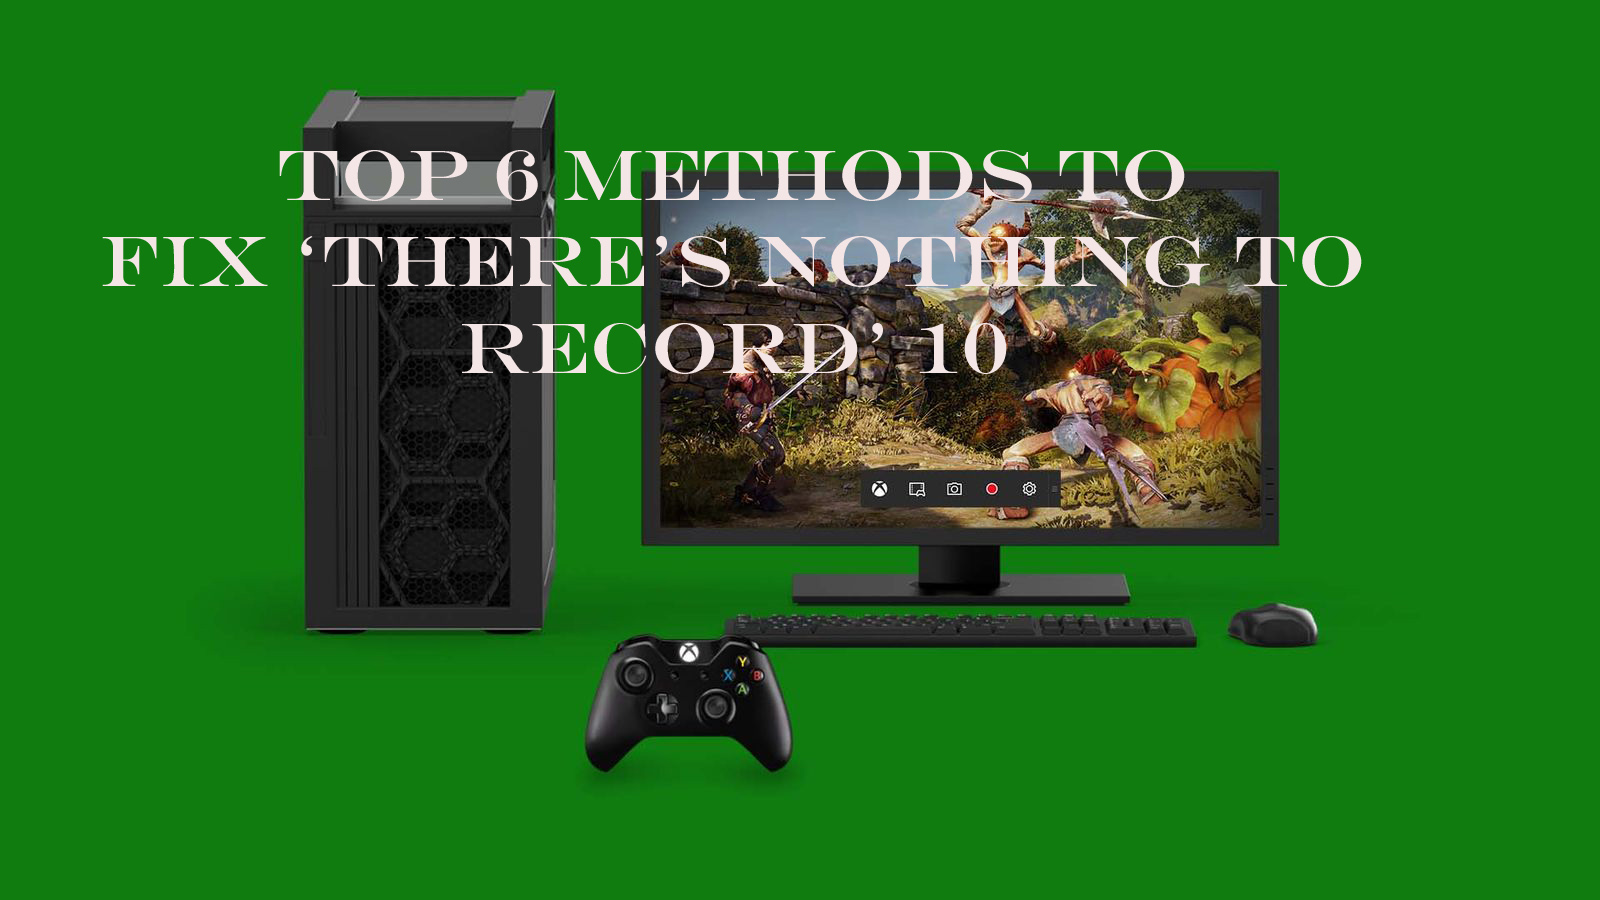 Top 6 Methods to Fix 'There's nothing to record' Game Bar Message on Windows 10